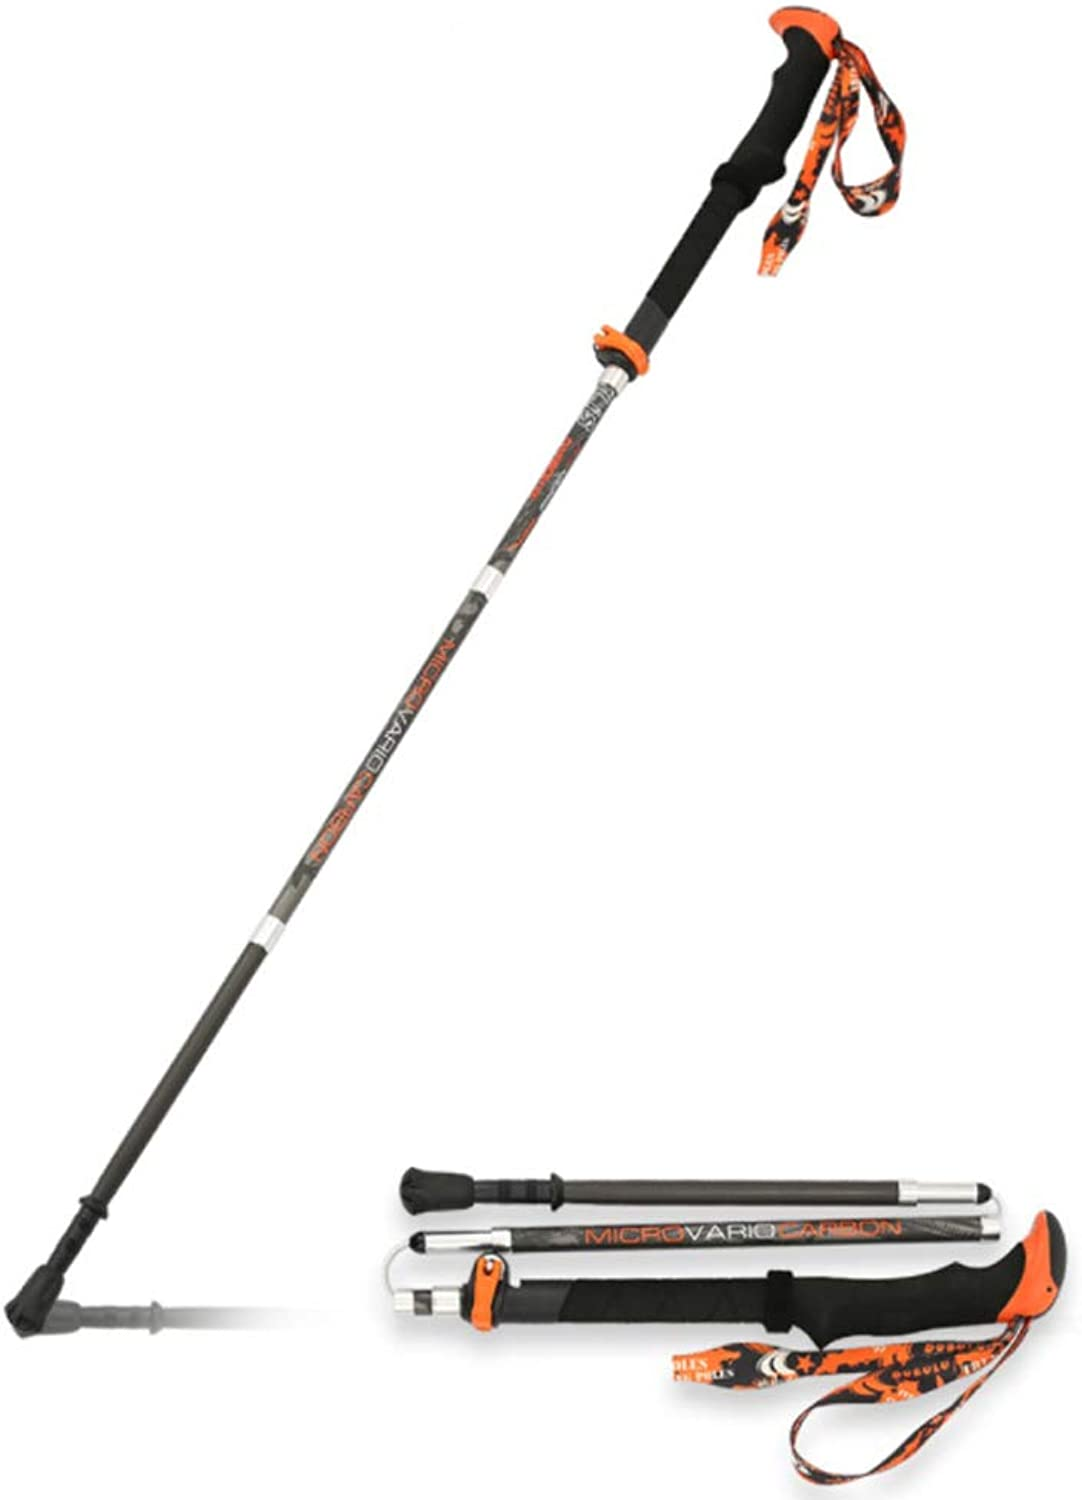 Trekking Poles, Durable Carbon Fiber Hiking Pole with Natural Cork Handle and Extended EVA Grips, Ultralight, Expandable, Collapsible